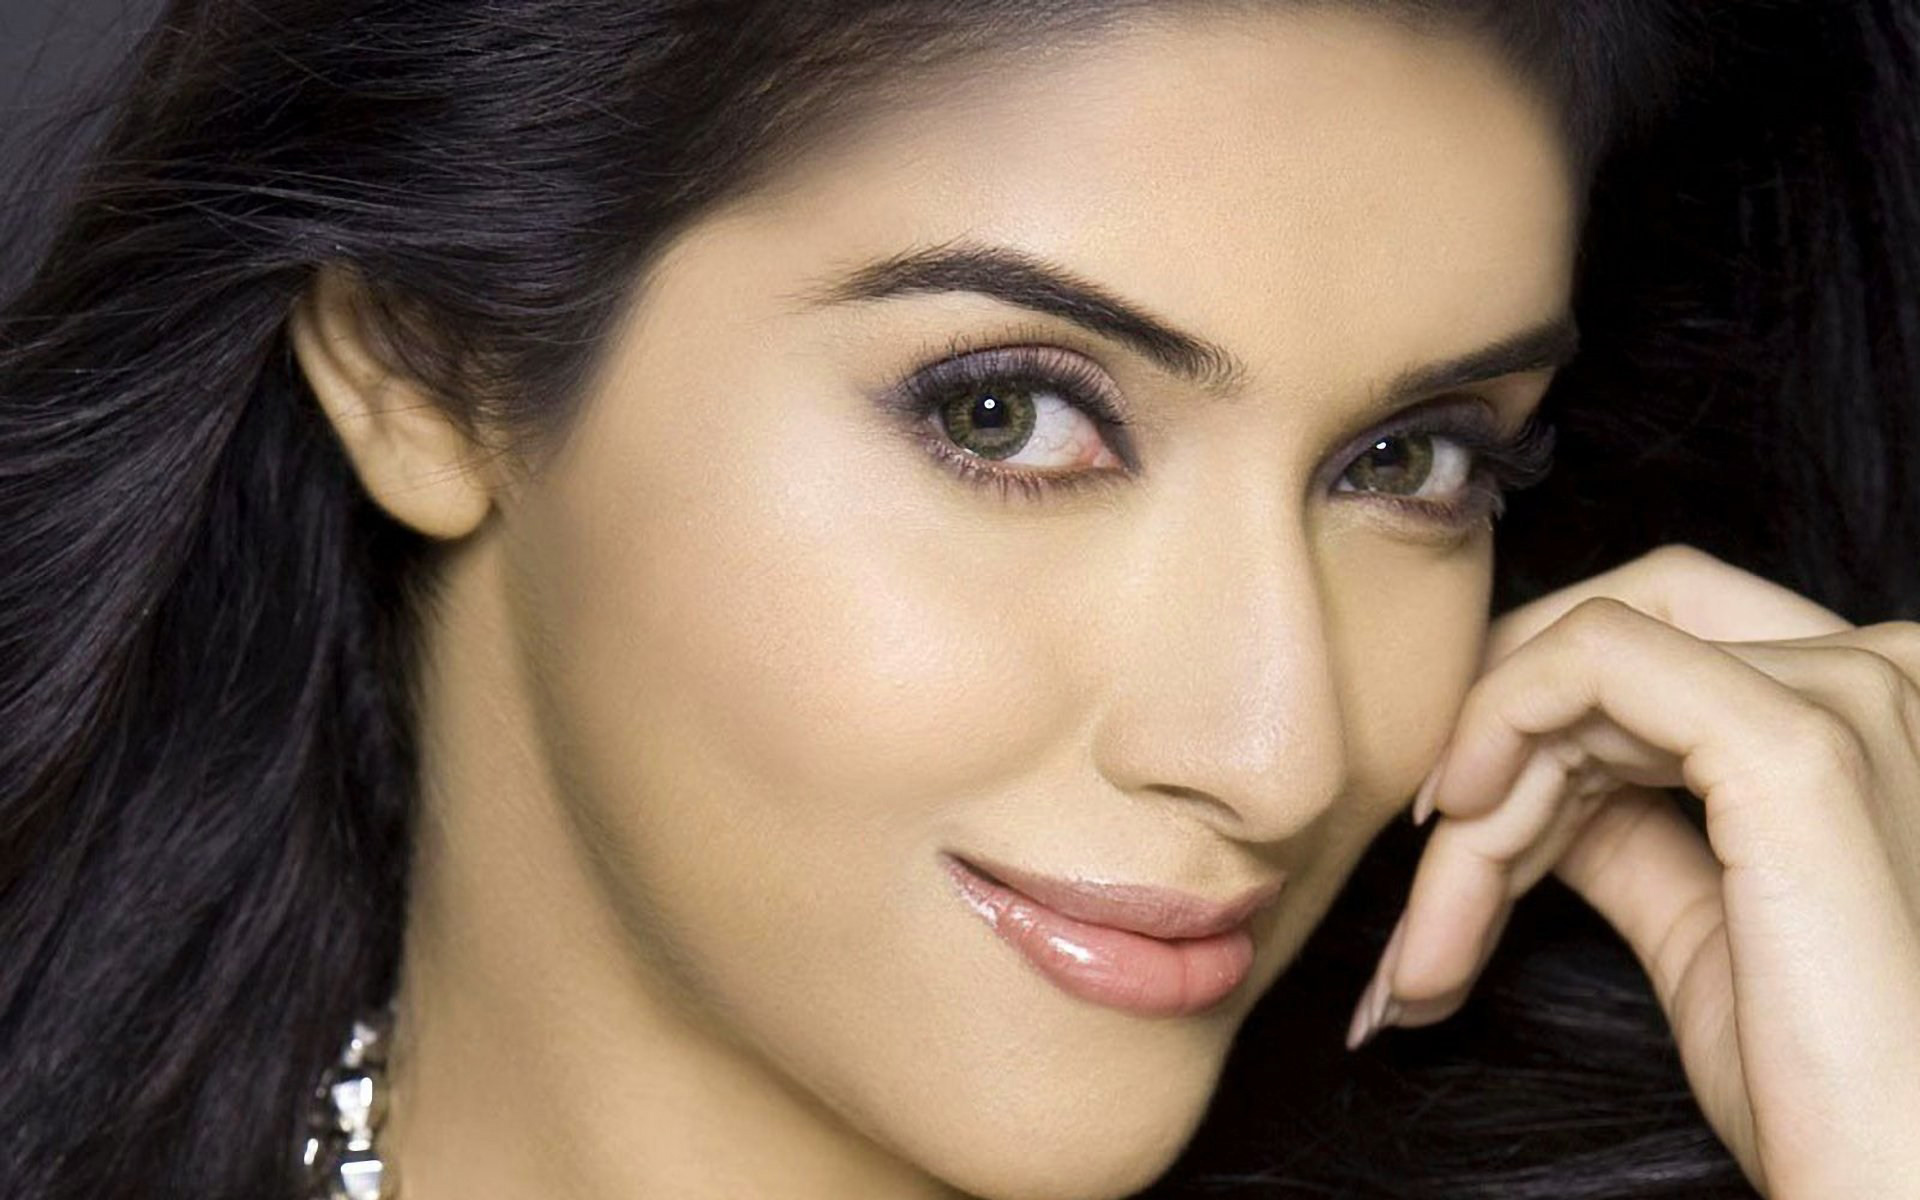 Asin images Pics Download for Facebook